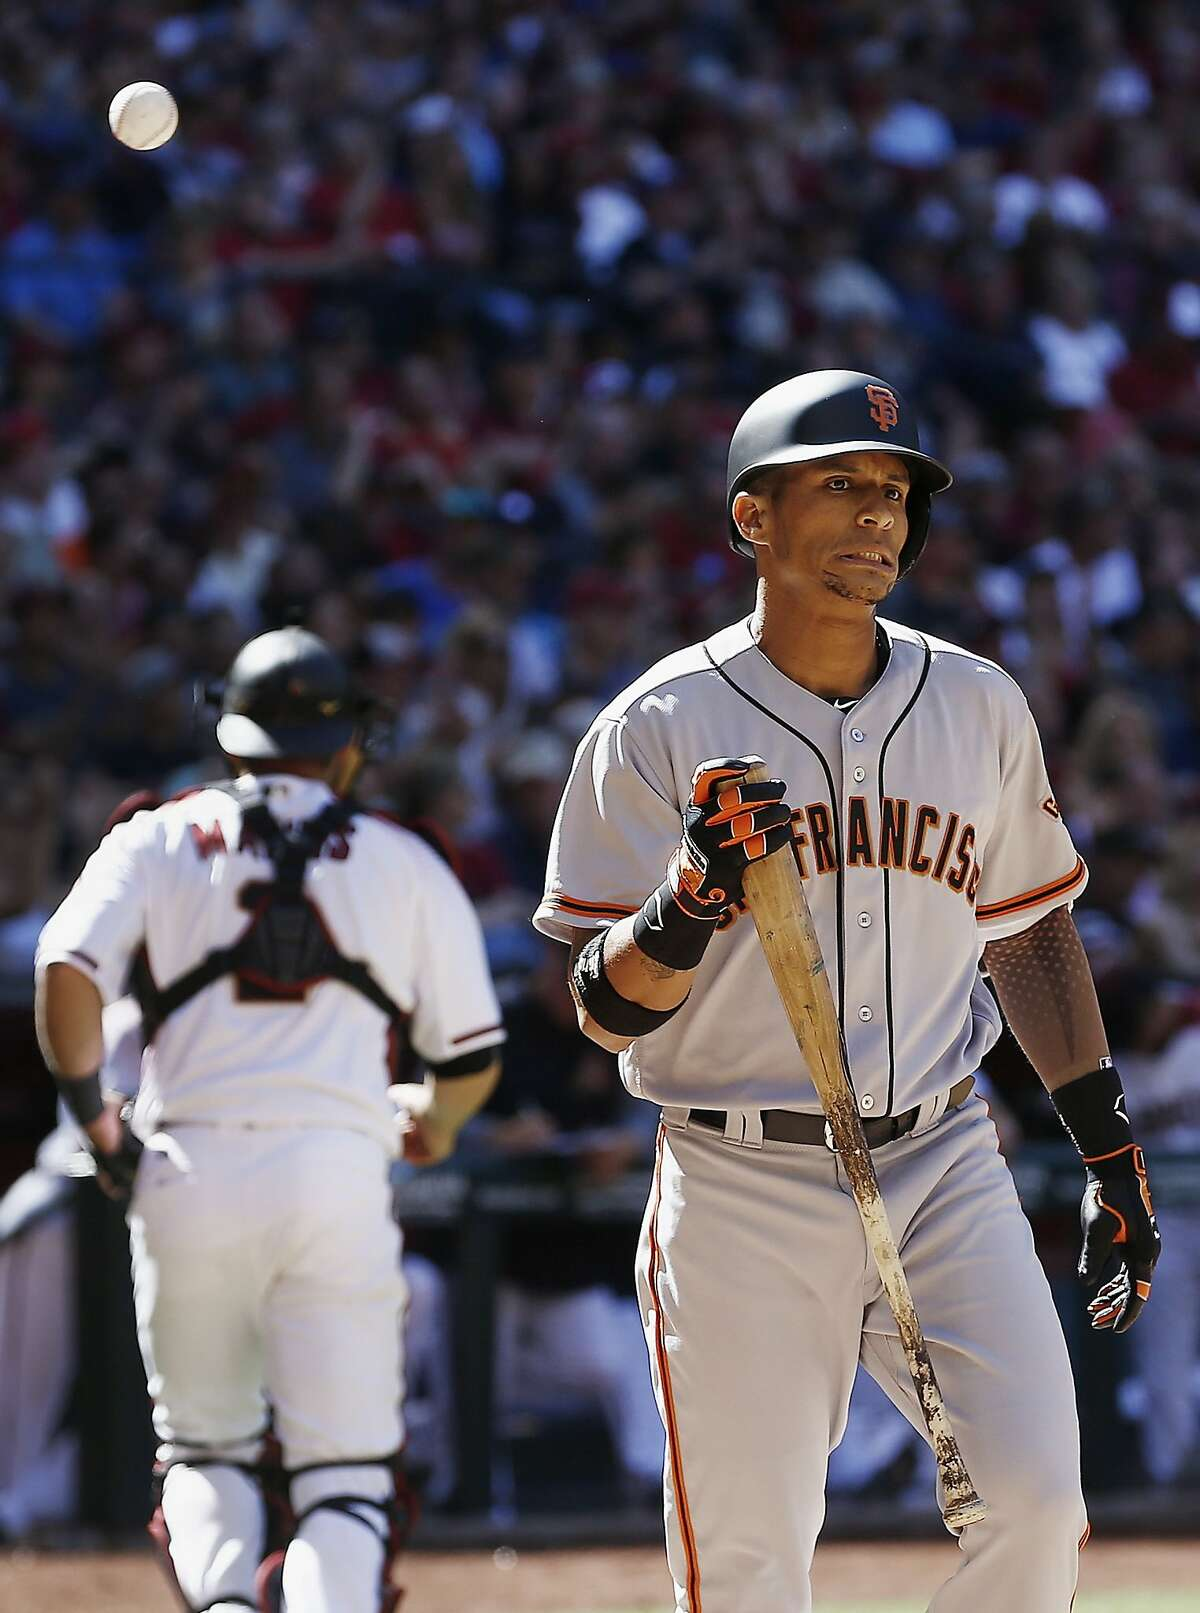 San Francisco Giants' Gorkys Hernandez, right, grimaces after being called out on strikes as Arizona Diamondbacks' Jeff Mathis, left, runs back to the dugout during the sixth inning of an opening day baseball game Sunday, April 2, 2017, in Phoenix. (AP Photo/Ross D. Franklin)